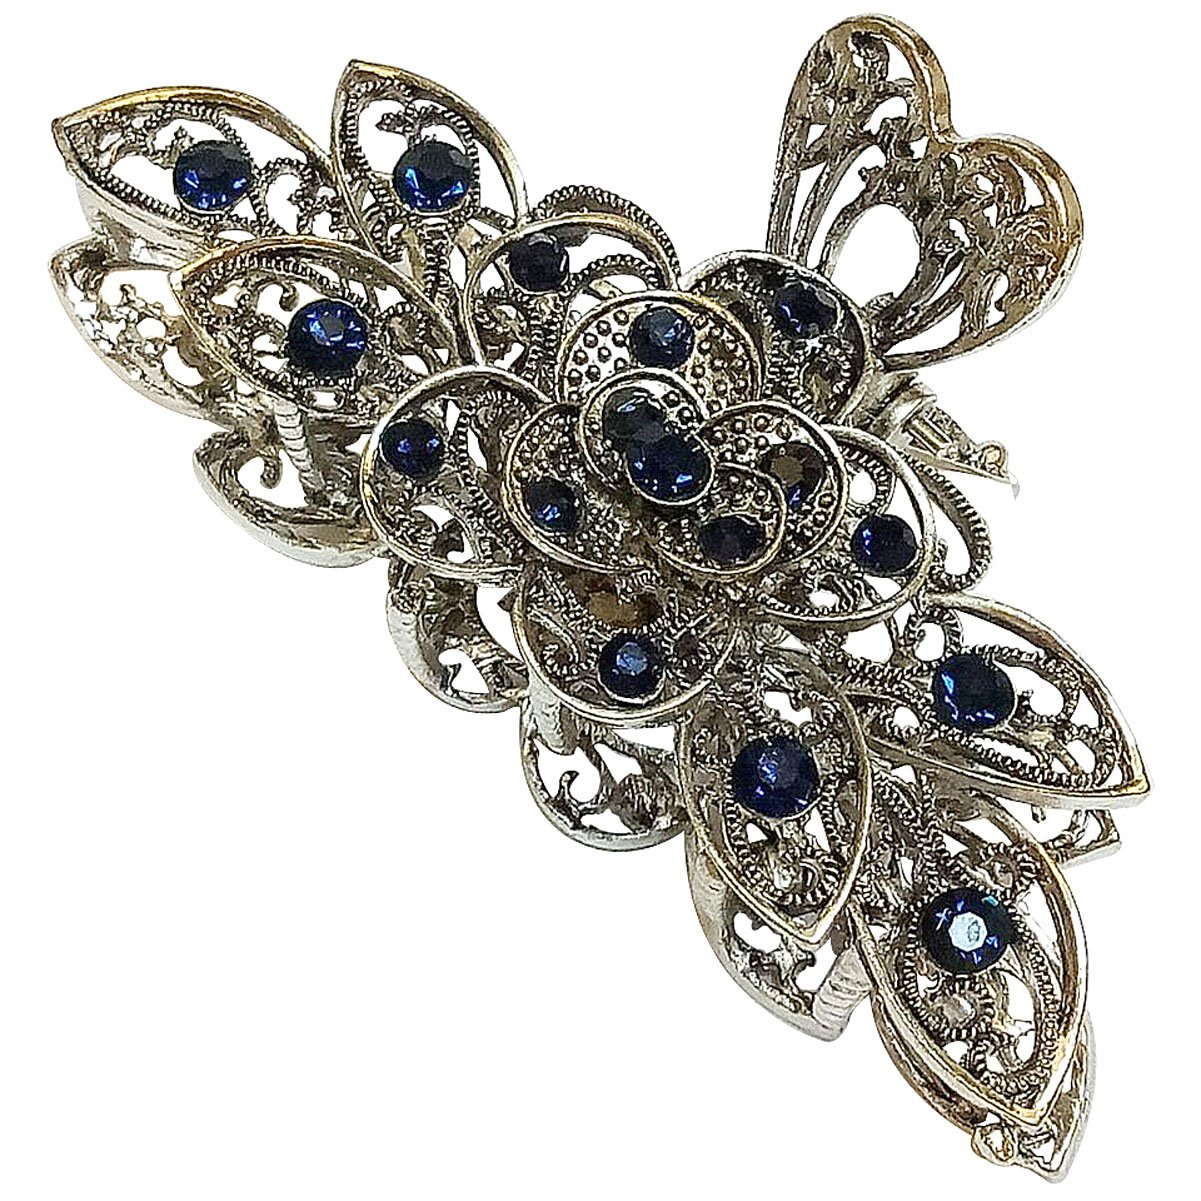 Vintage Chic Metal Alloy Rhinestone Large Size Fancy Hair Claw Jaw Clips Pins - Women Fashion Retro Flowers Hair Catch Barrette Hair Updo Grip Hair Accessories for Thick Hair (A#)